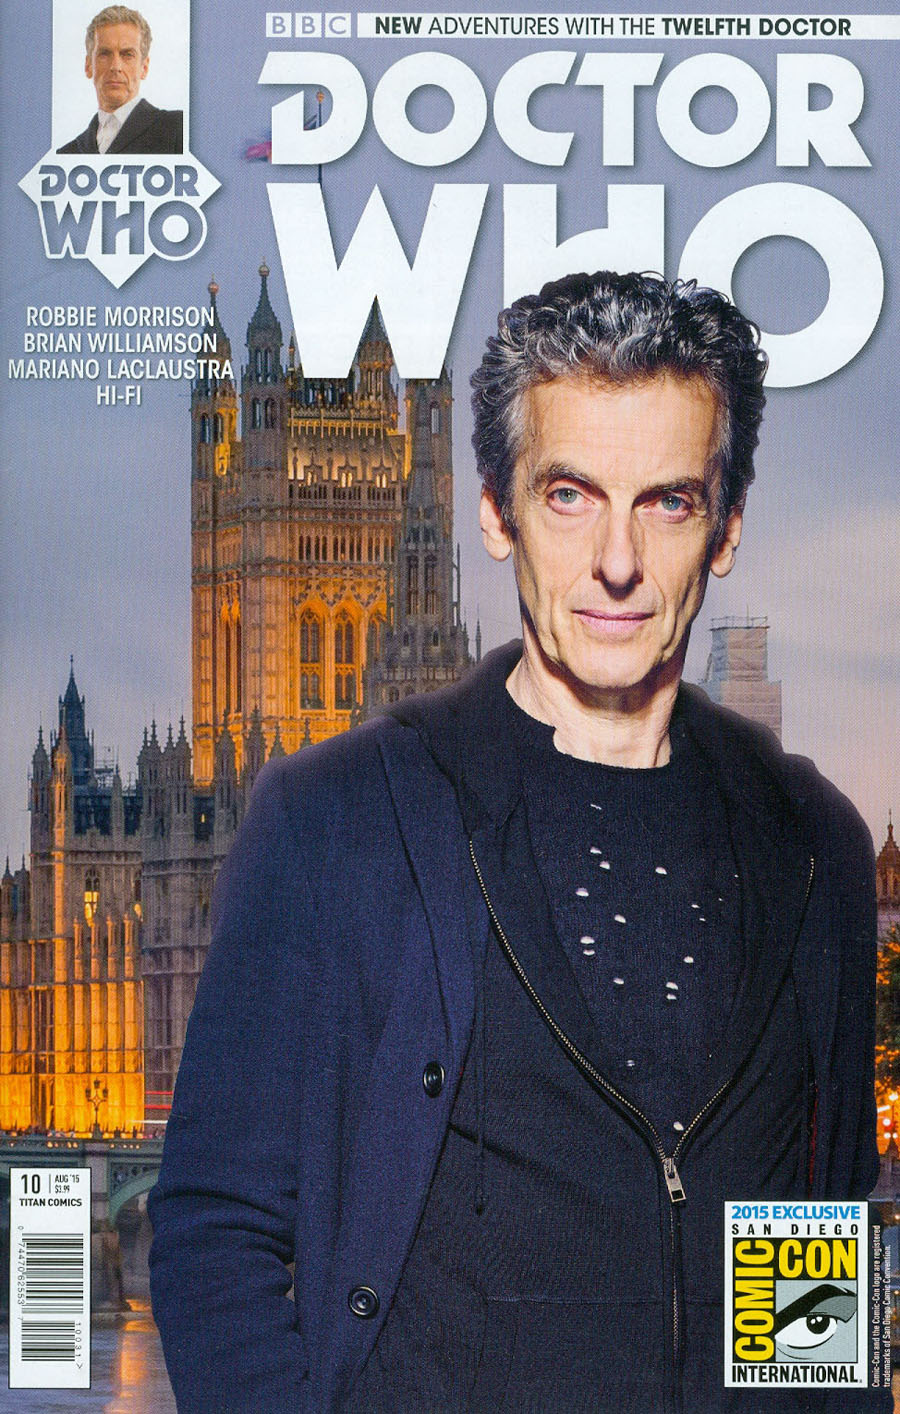 Doctor Who 12th Doctor #10 Cover C SDCC 2015 Exclusive Photo Variant Cover